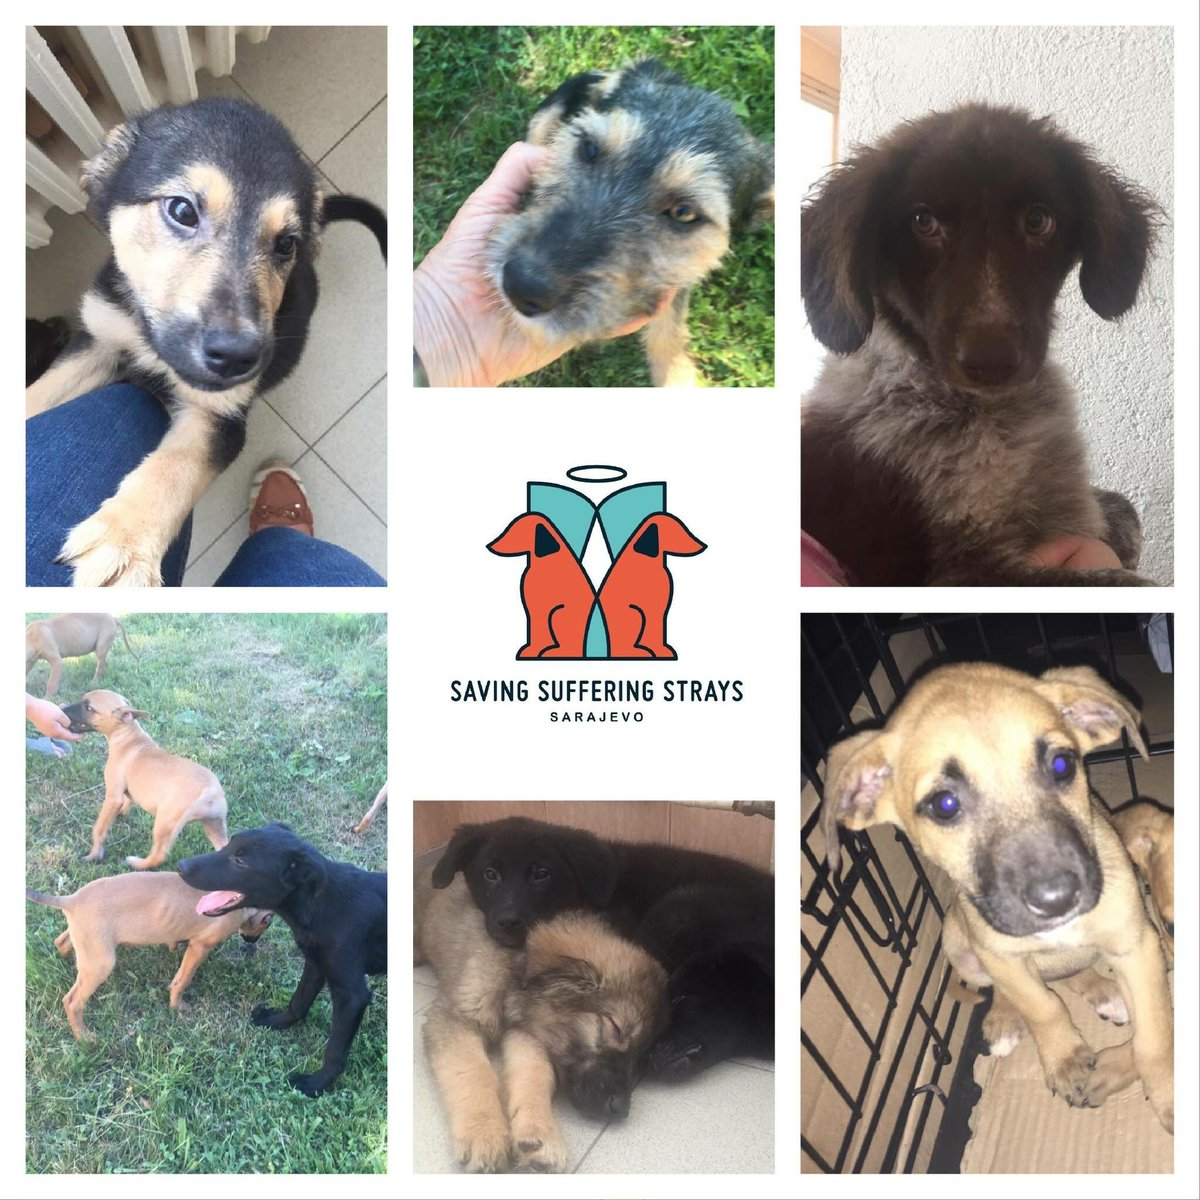 #AdoptDontShop #lots of puppies for ADOPTION #please DM @StraysSarajevo for info #easy Adoption process #satisfaction guaranteed <br>http://pic.twitter.com/GlYVxO4XDC